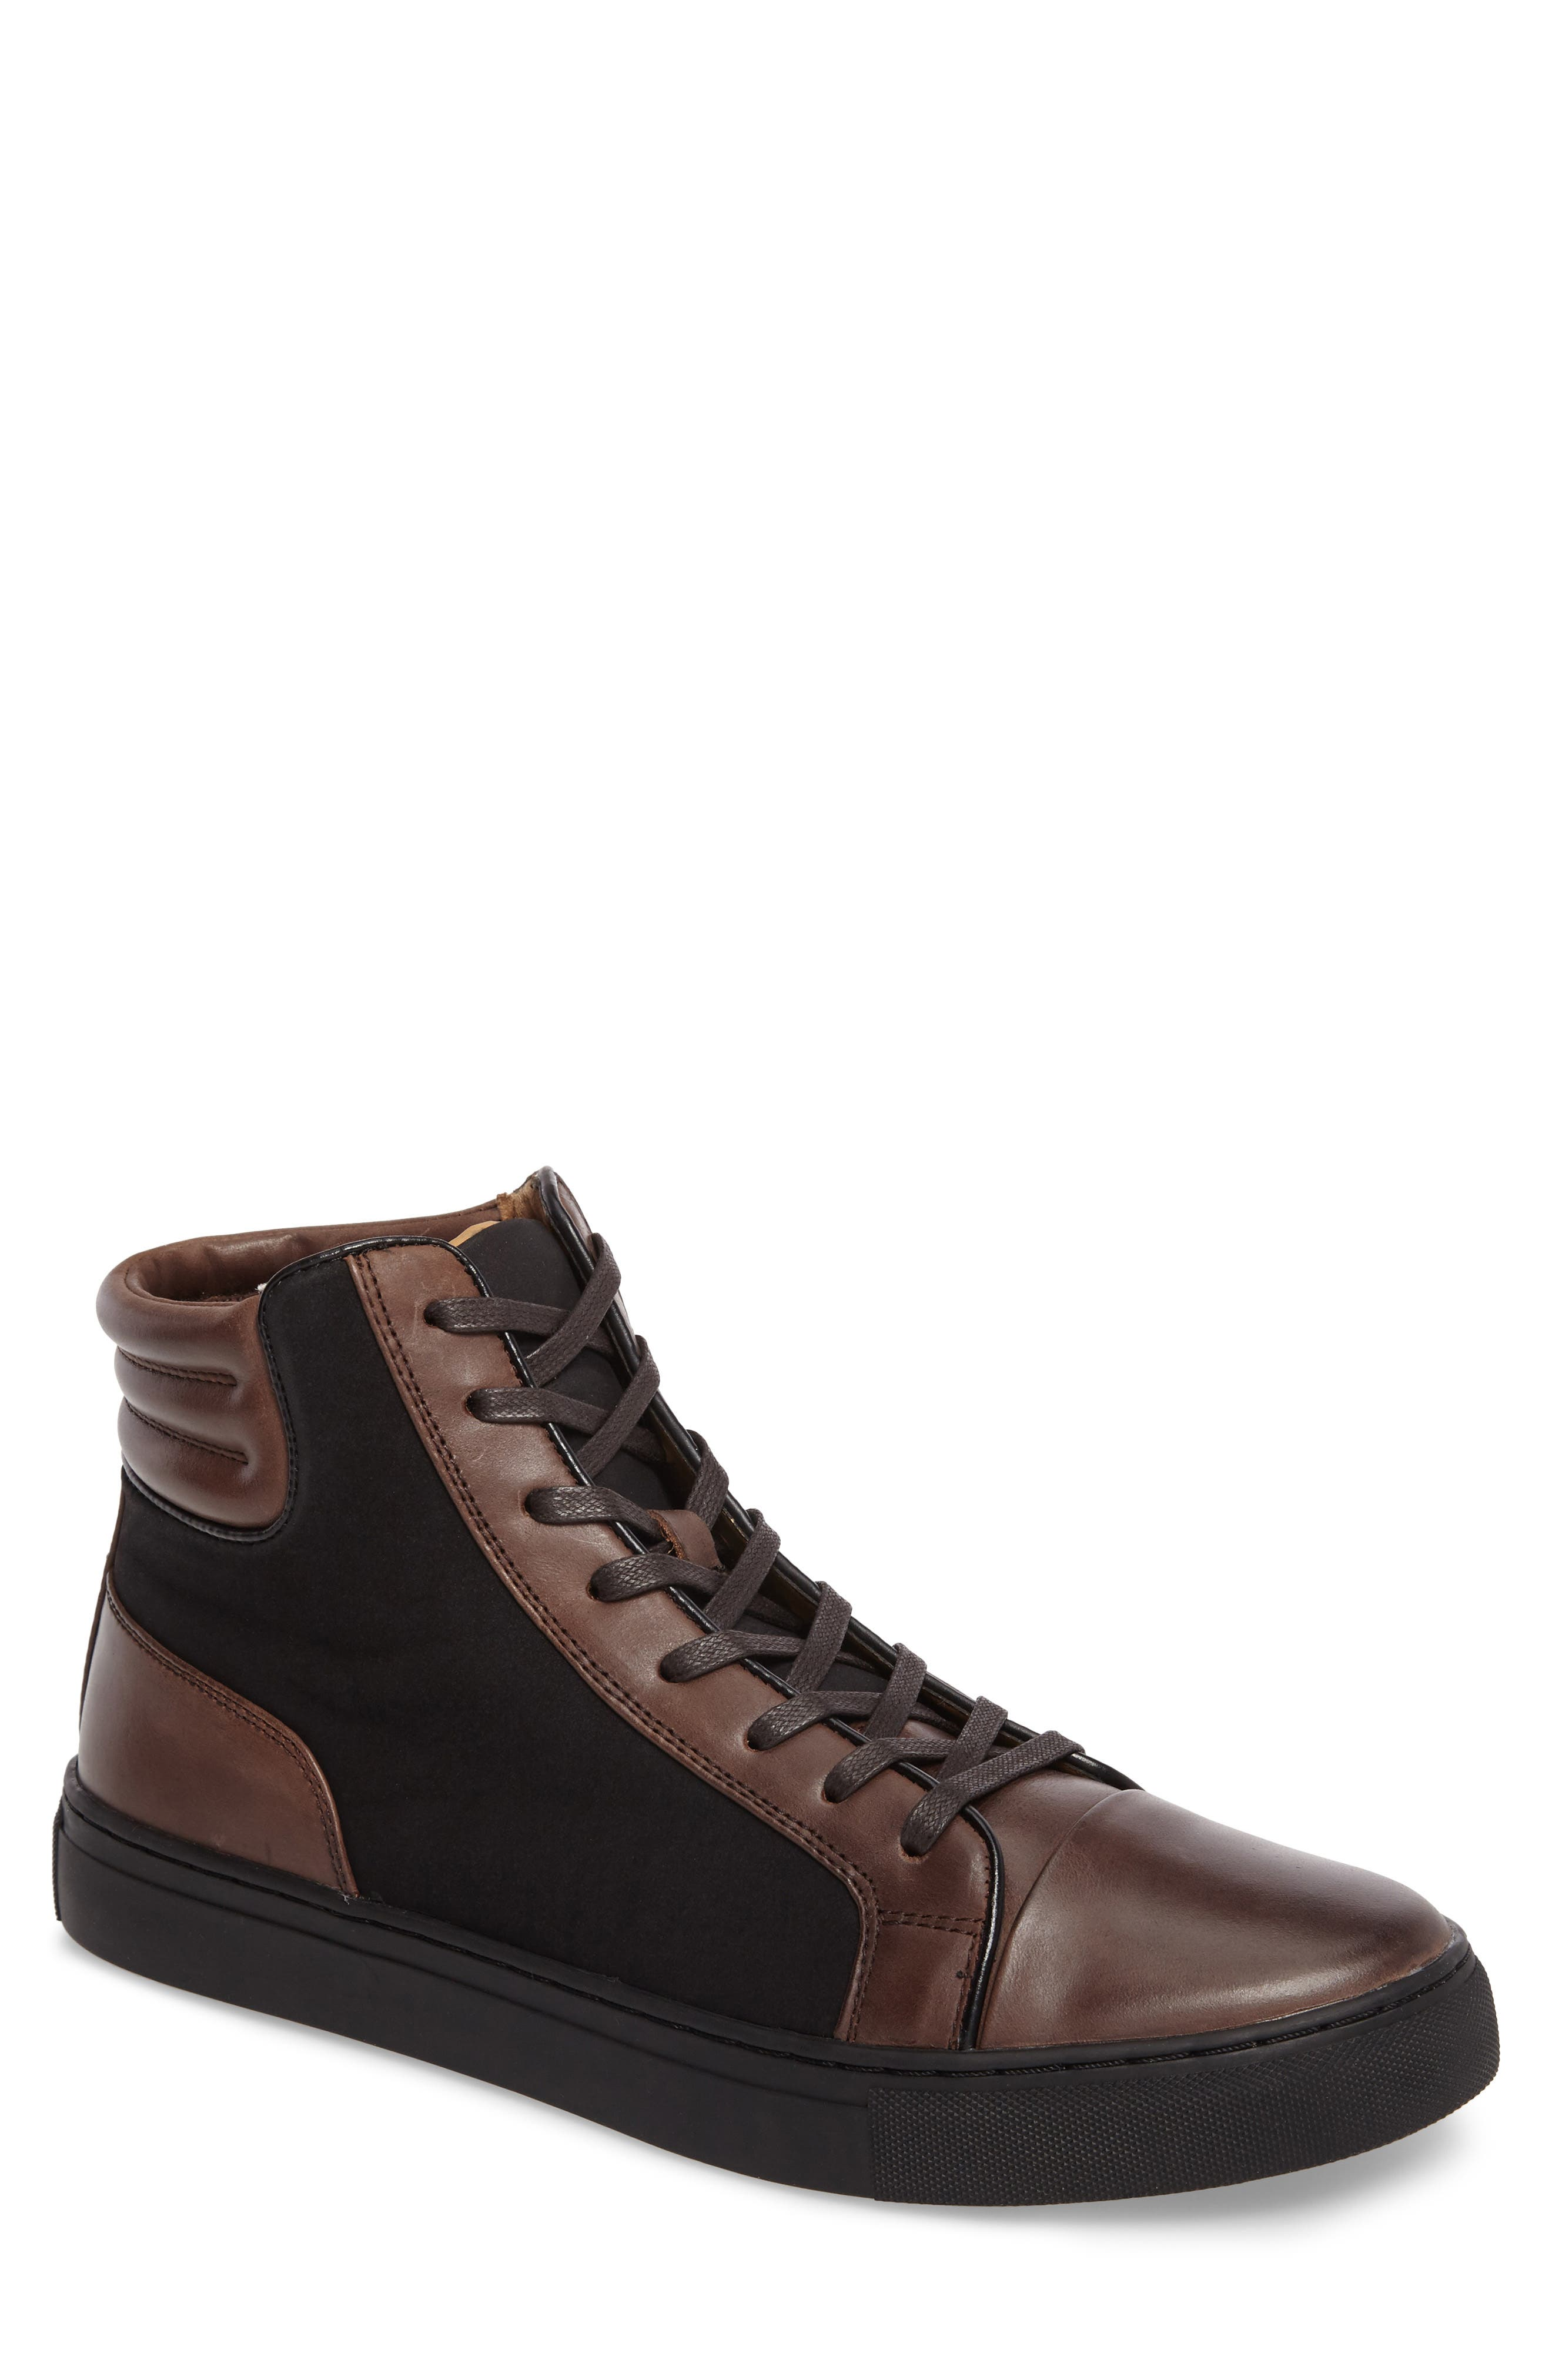 Kenneth Cole Reaction Sneaker,                         Main,                         color, Brown/ Black